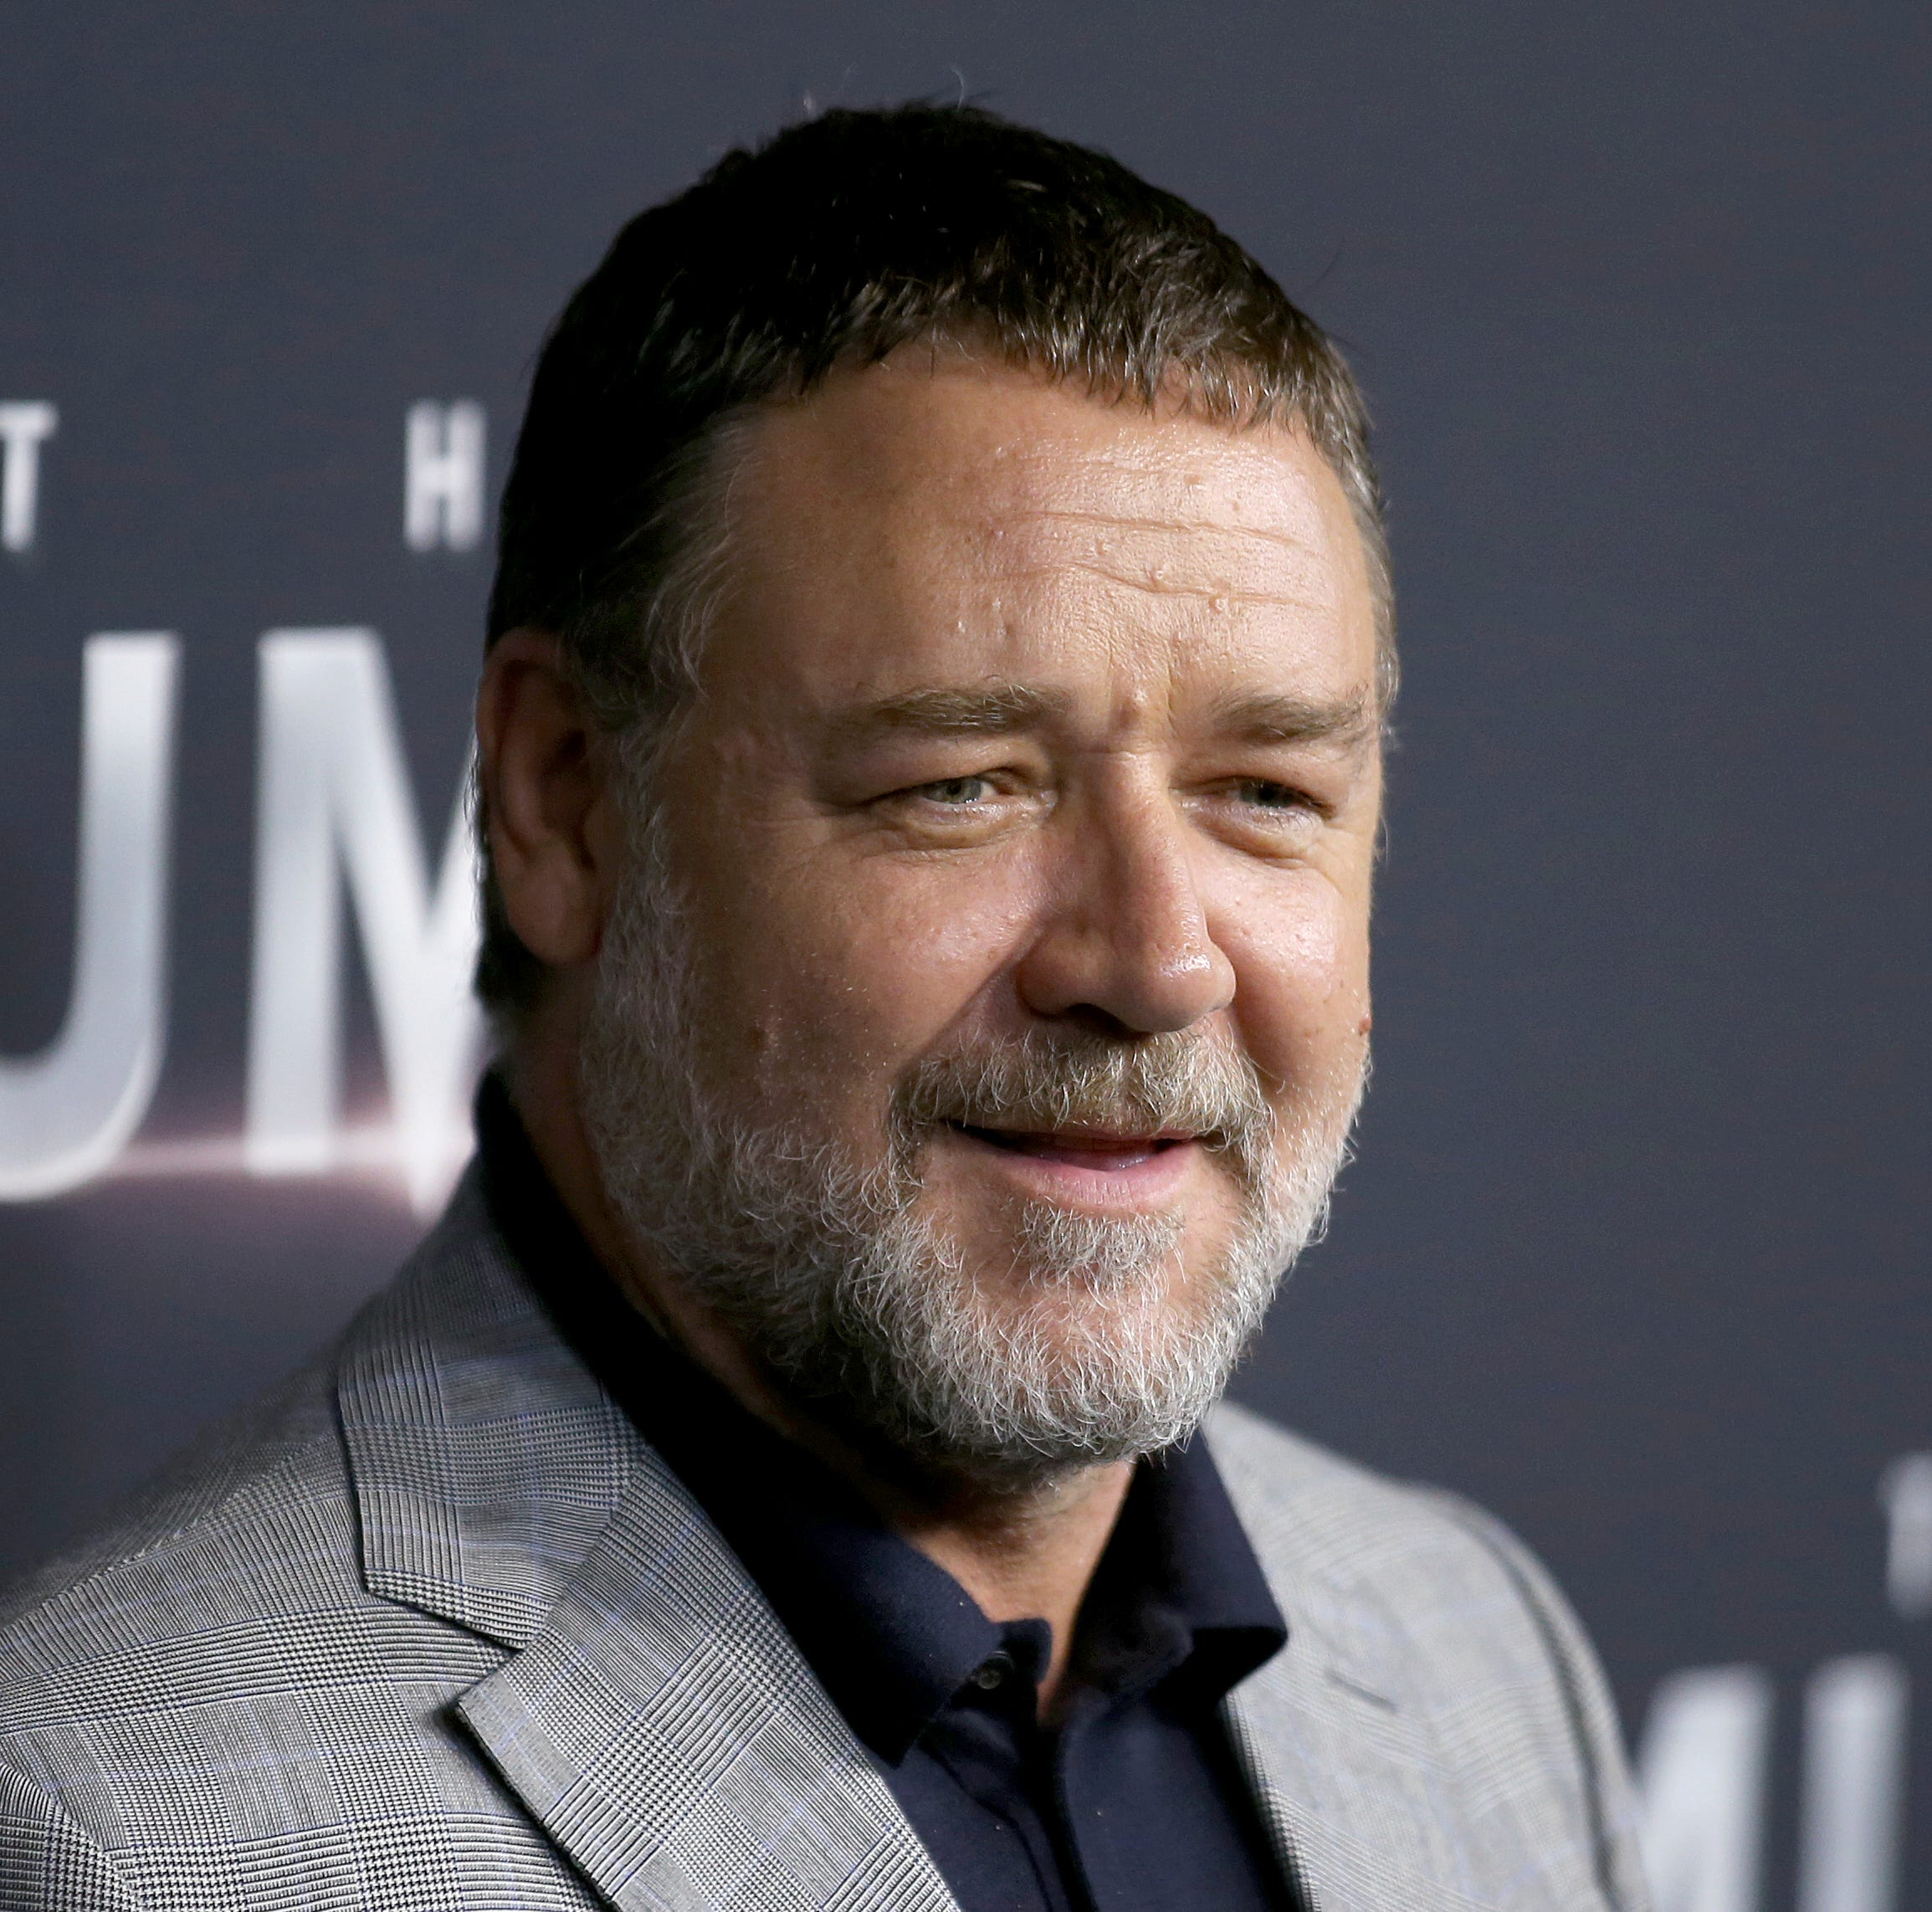 Russell Crowe in Detroit and tweeting